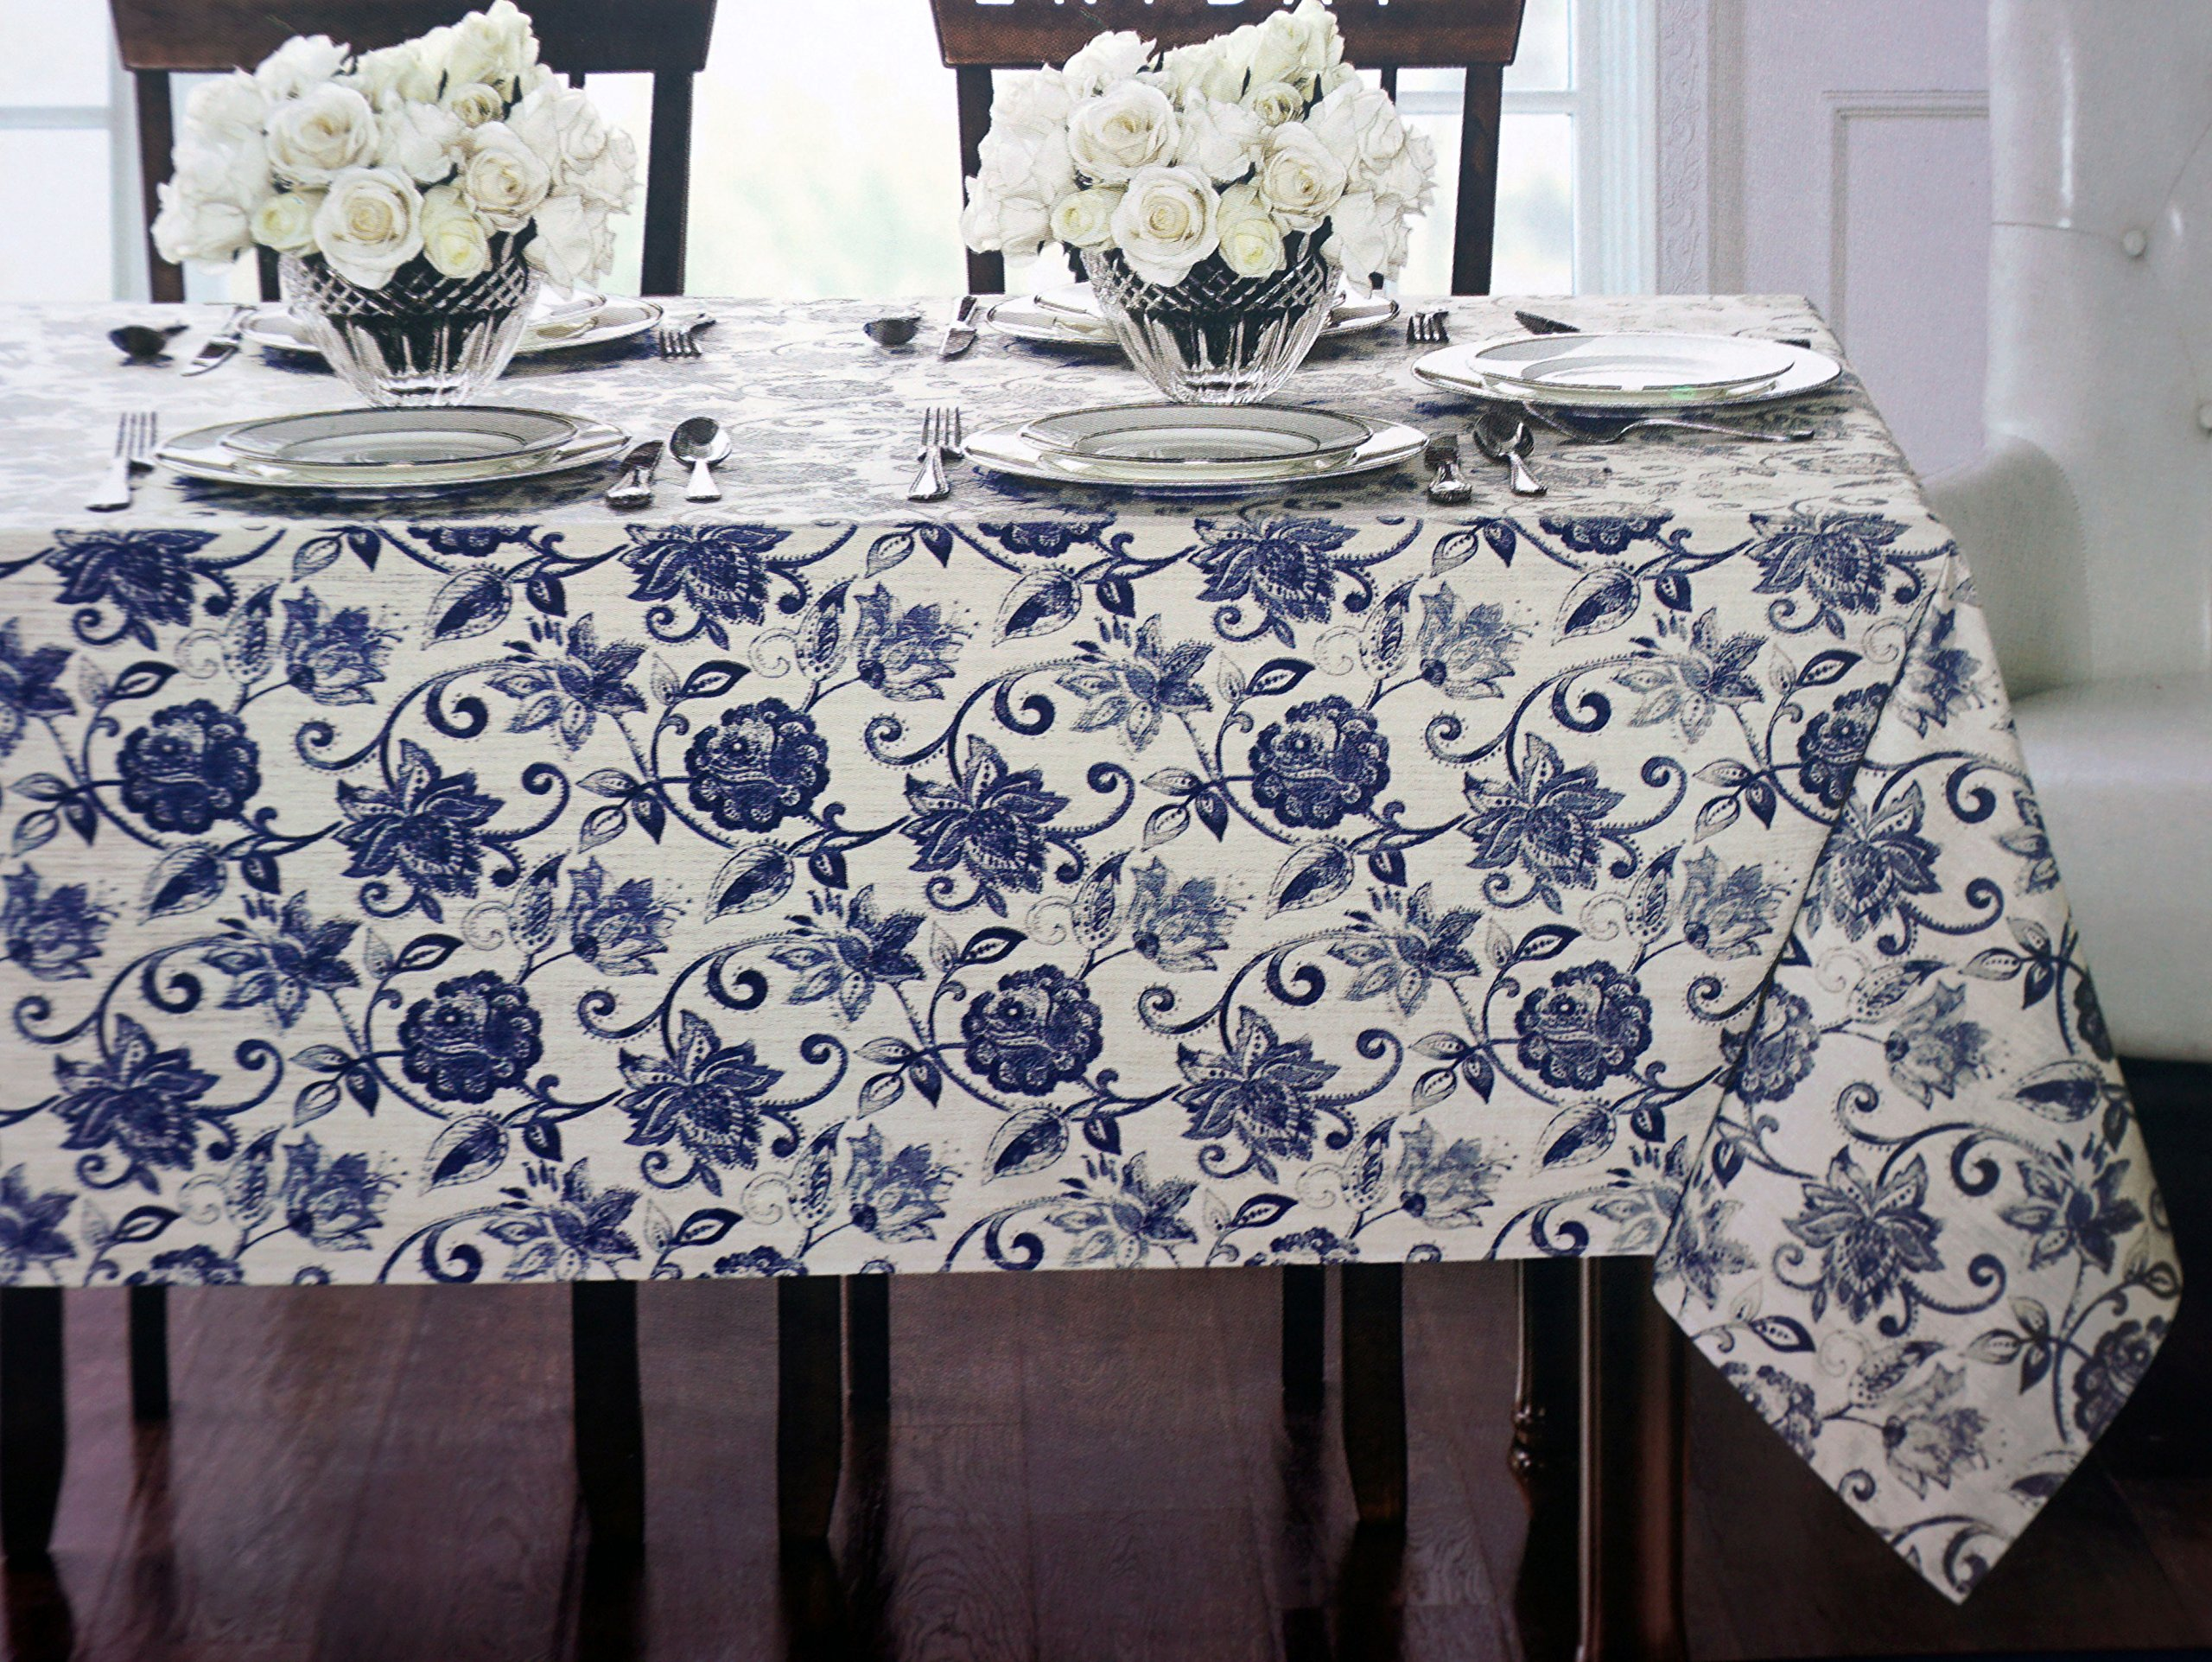 Classical Jacobean Floral Pattern Indigo Blue on Cream, Waterford Linens Fabric Everyday Tablecloth -- Hickory, Indigo -- 70 Inches Round by Waterford Linens